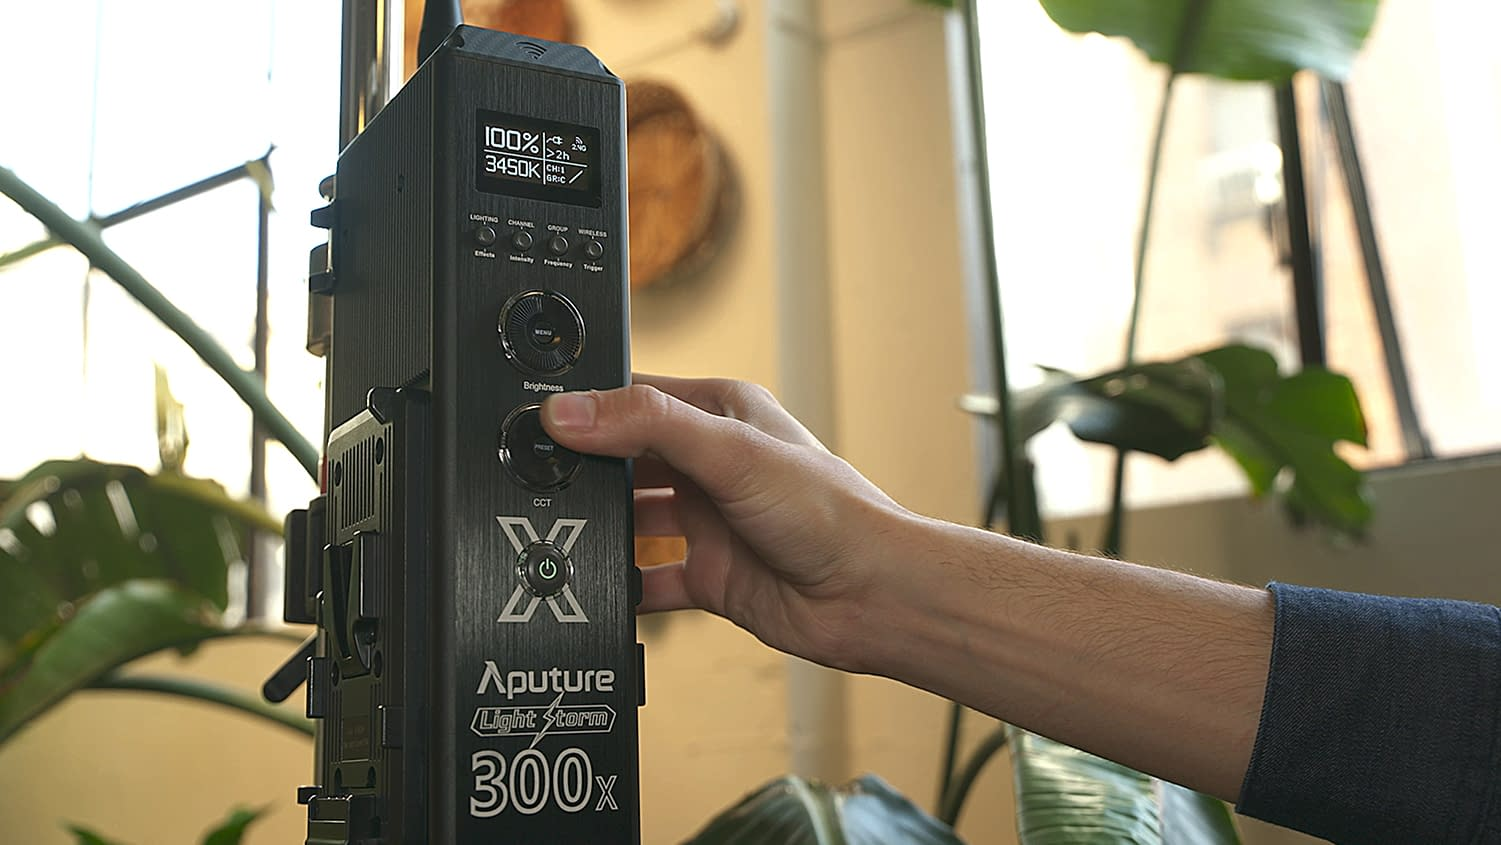 Aputure Light Storm 300X Controller